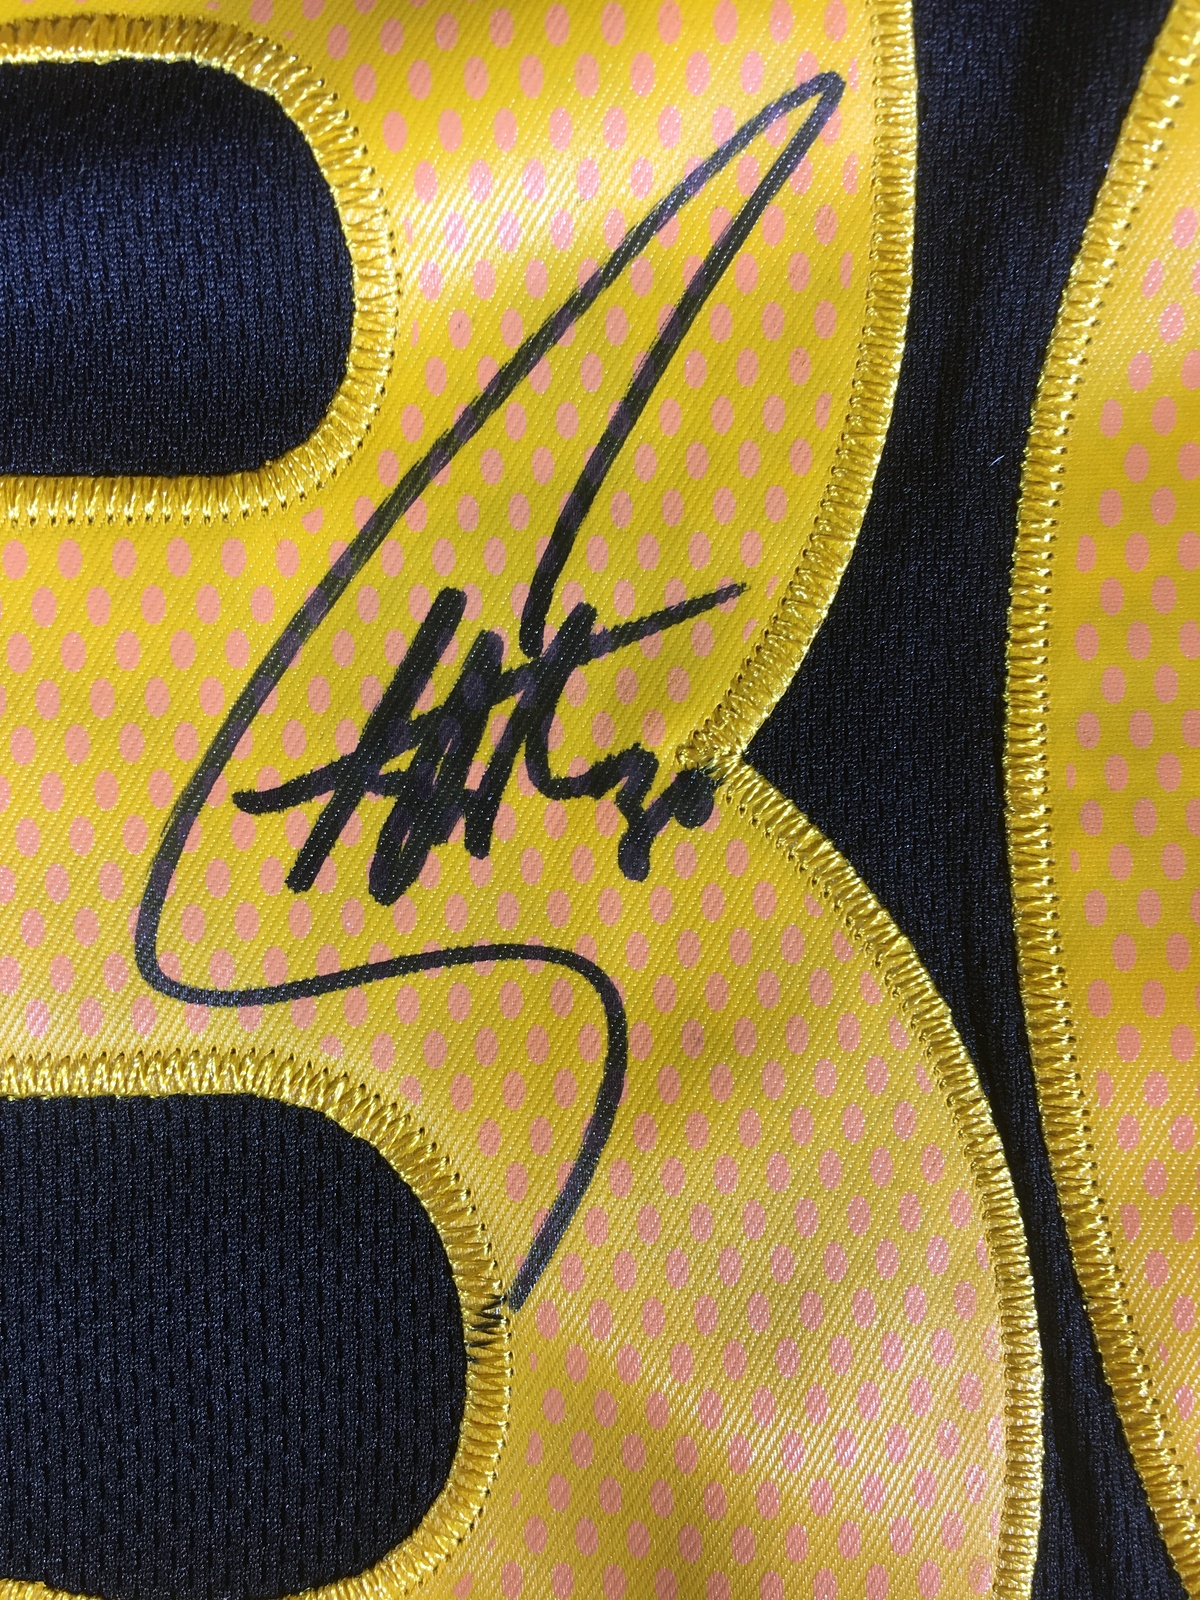 90b2cf8935a STEPHEN CURRY - GOLDEN STATE WARRIORS - HAND SIGNED CHINESE NEW YEAR JERSEY  COA